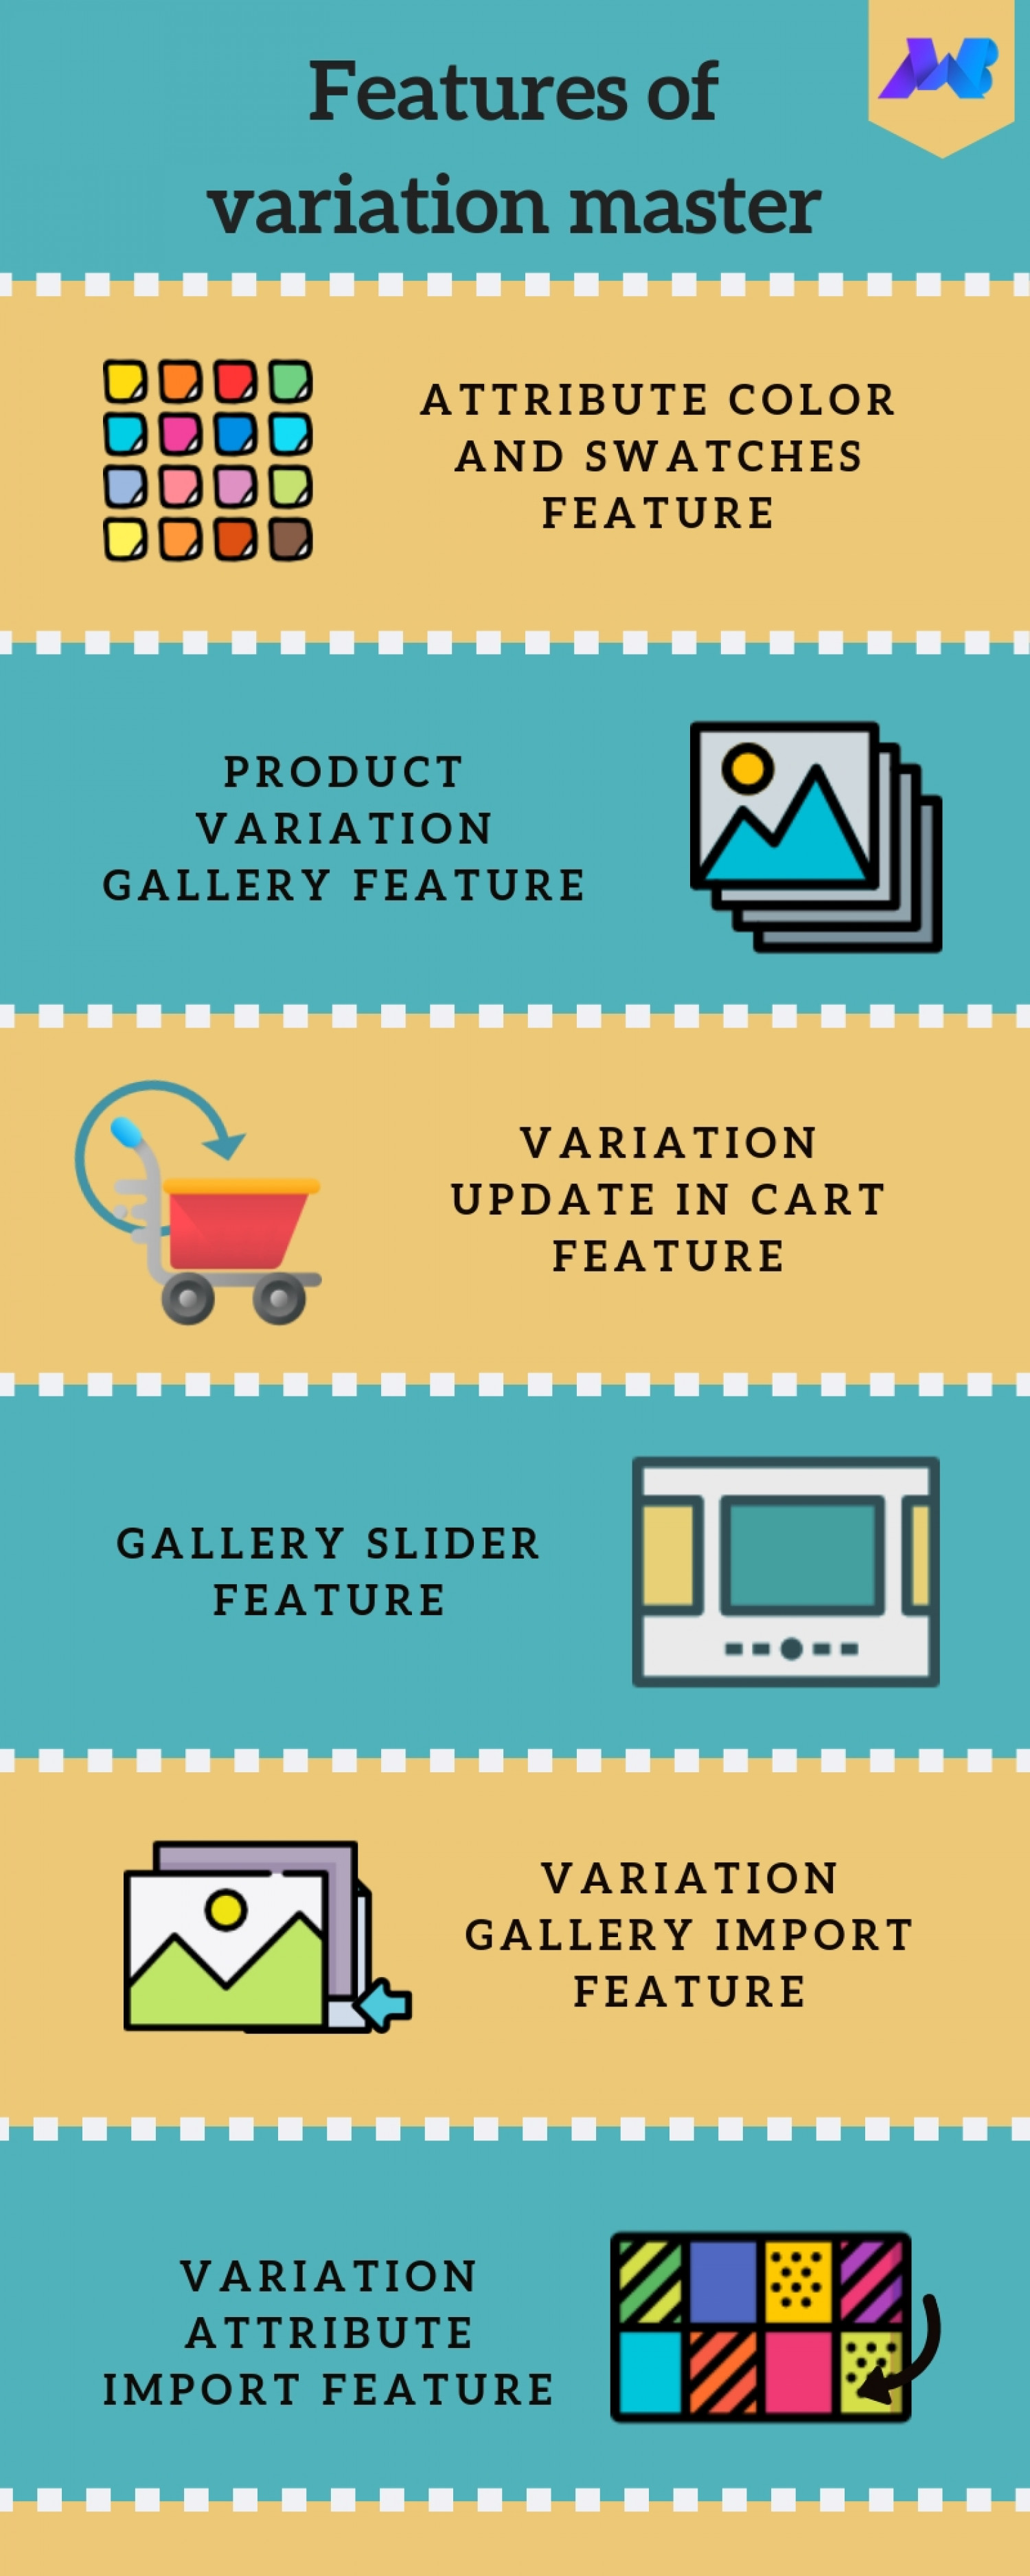 Features of Variation Master Infographic